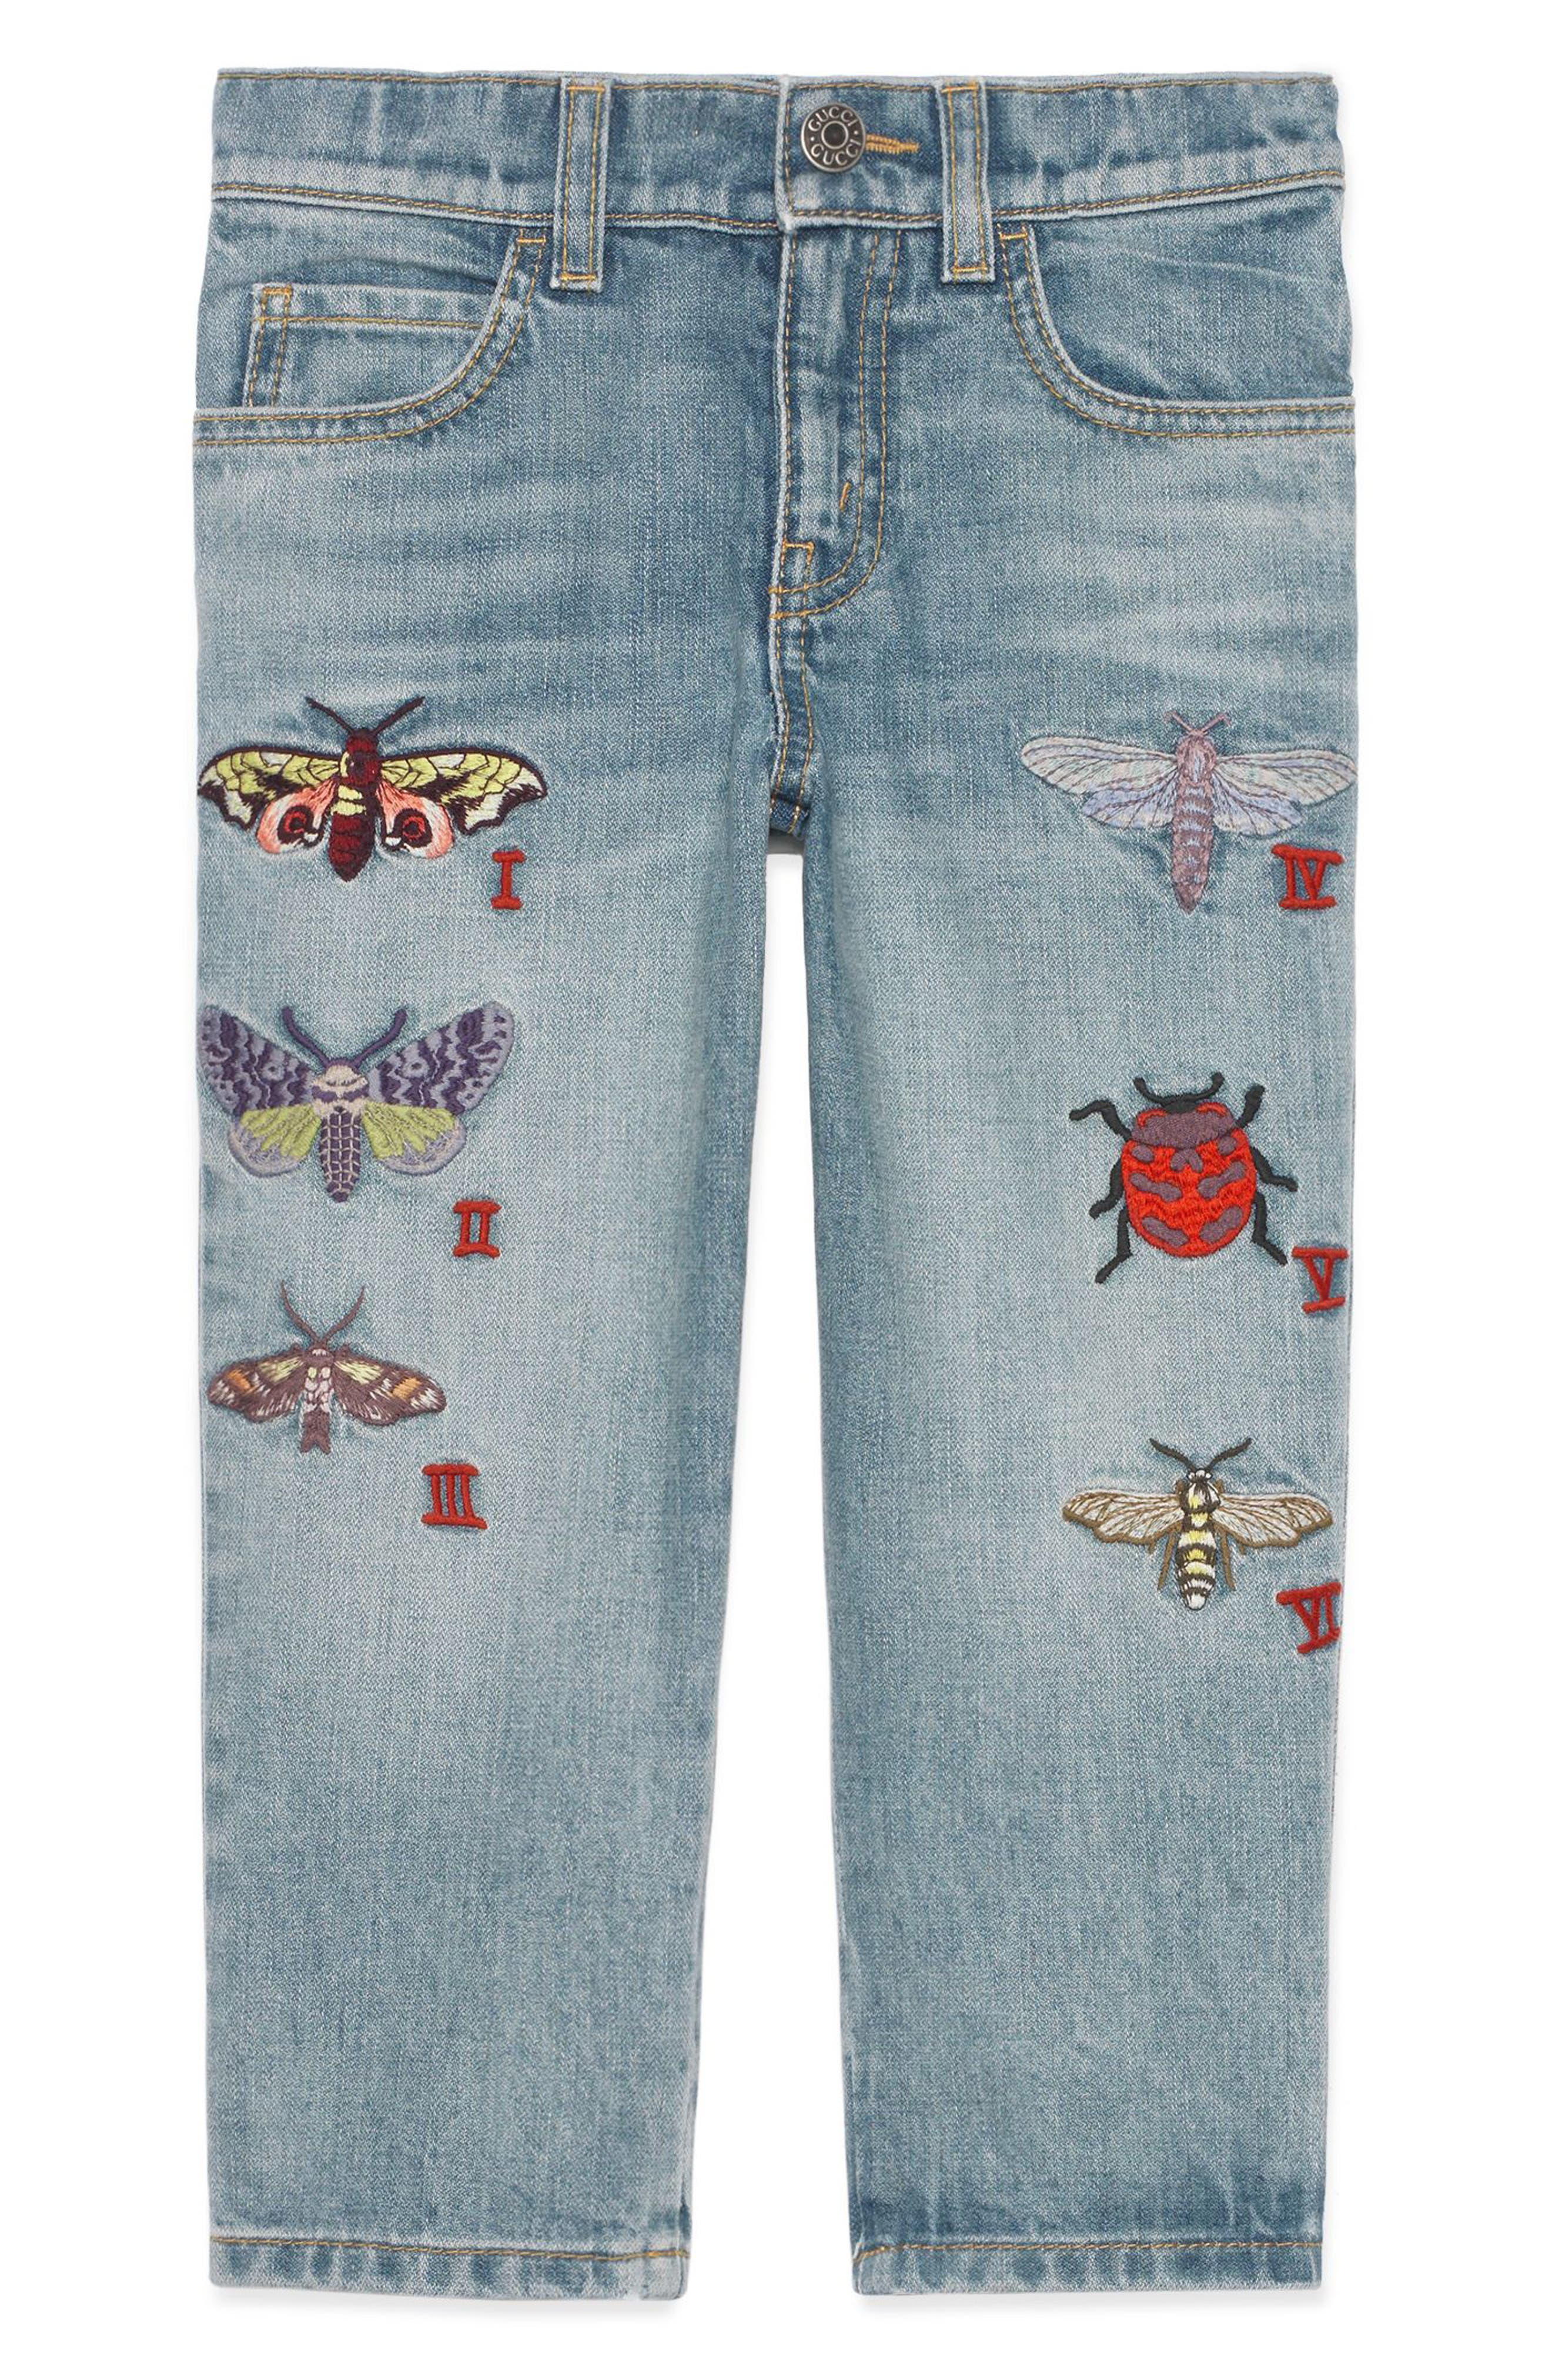 Insect Appliqué Jeans,                             Main thumbnail 1, color,                             OLTREMARE